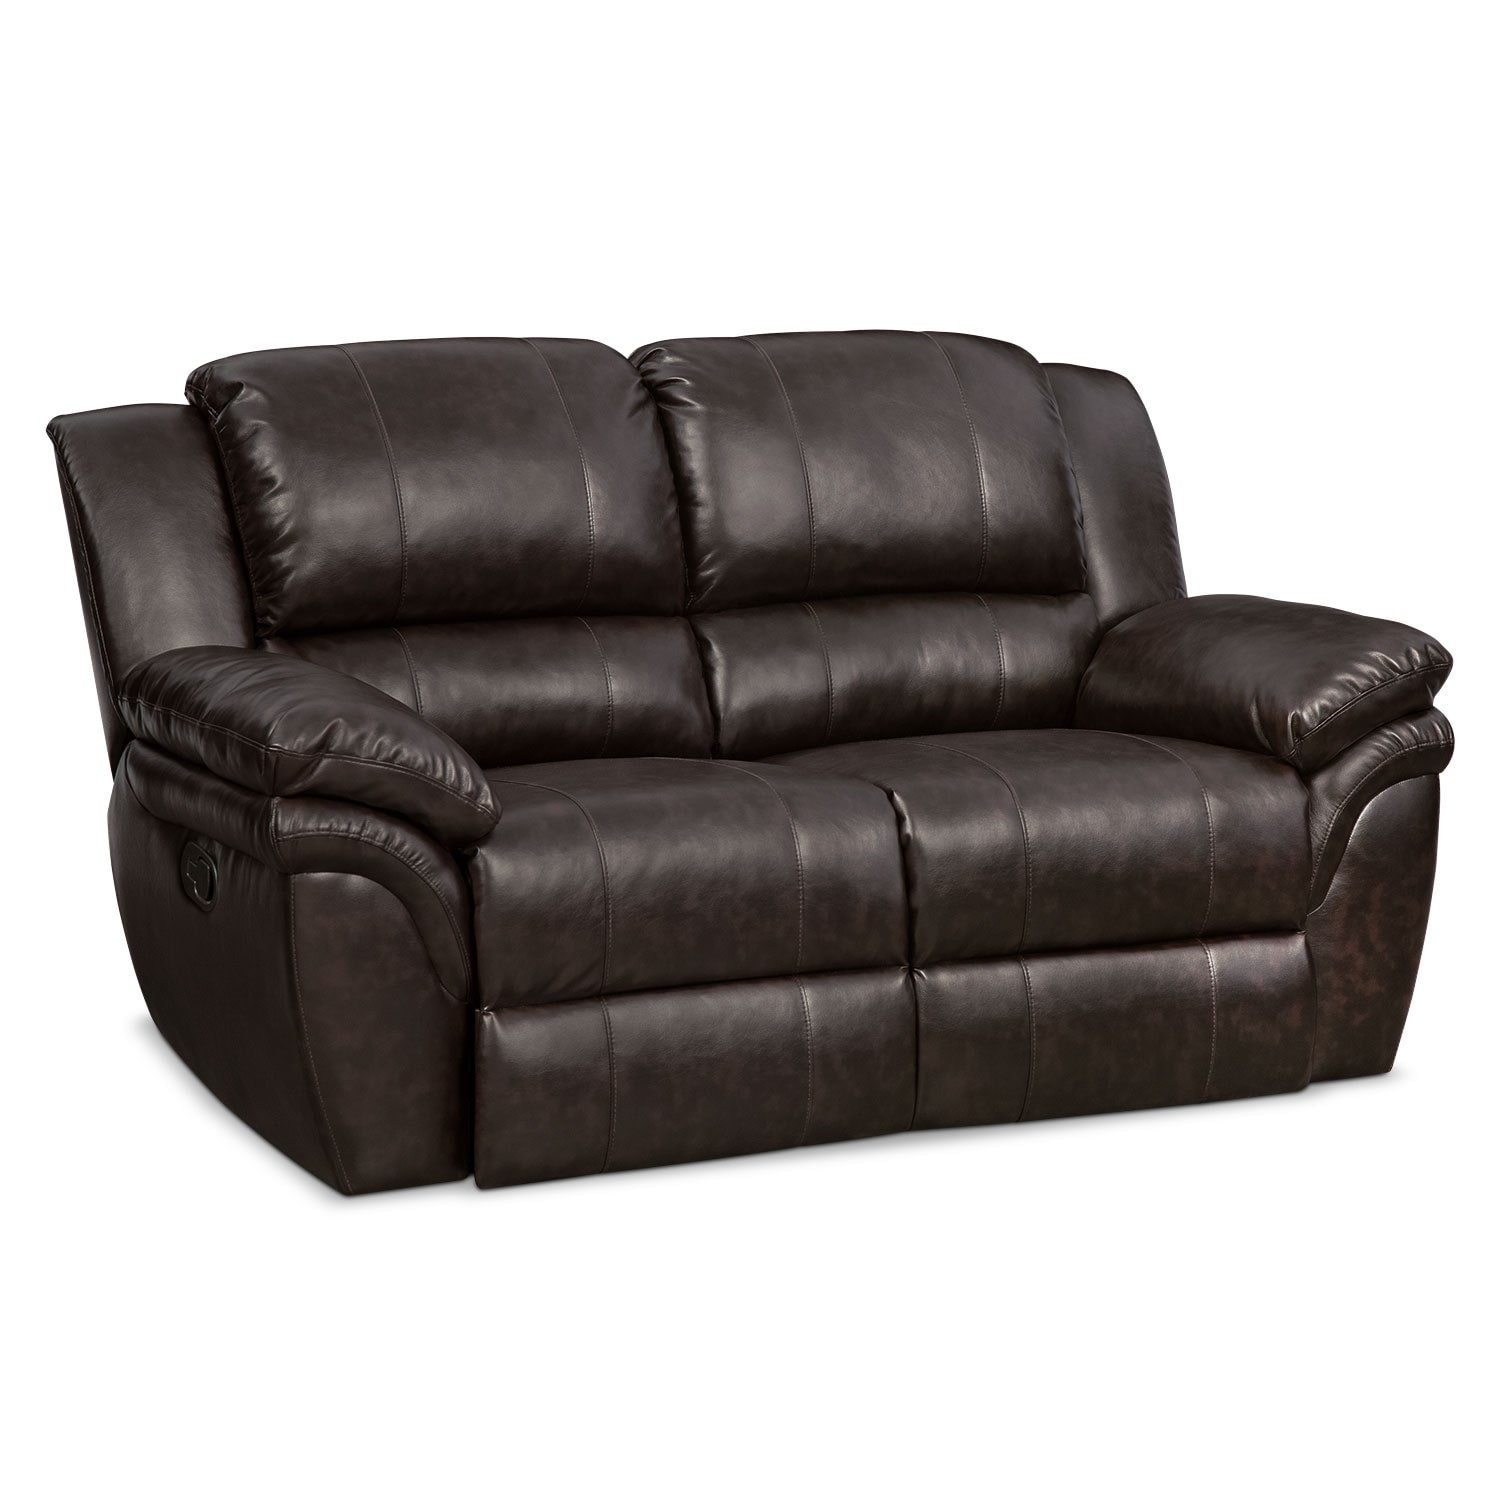 Aldo Manual Dual-Reclining Sofa, Loveseat And Recliner Set